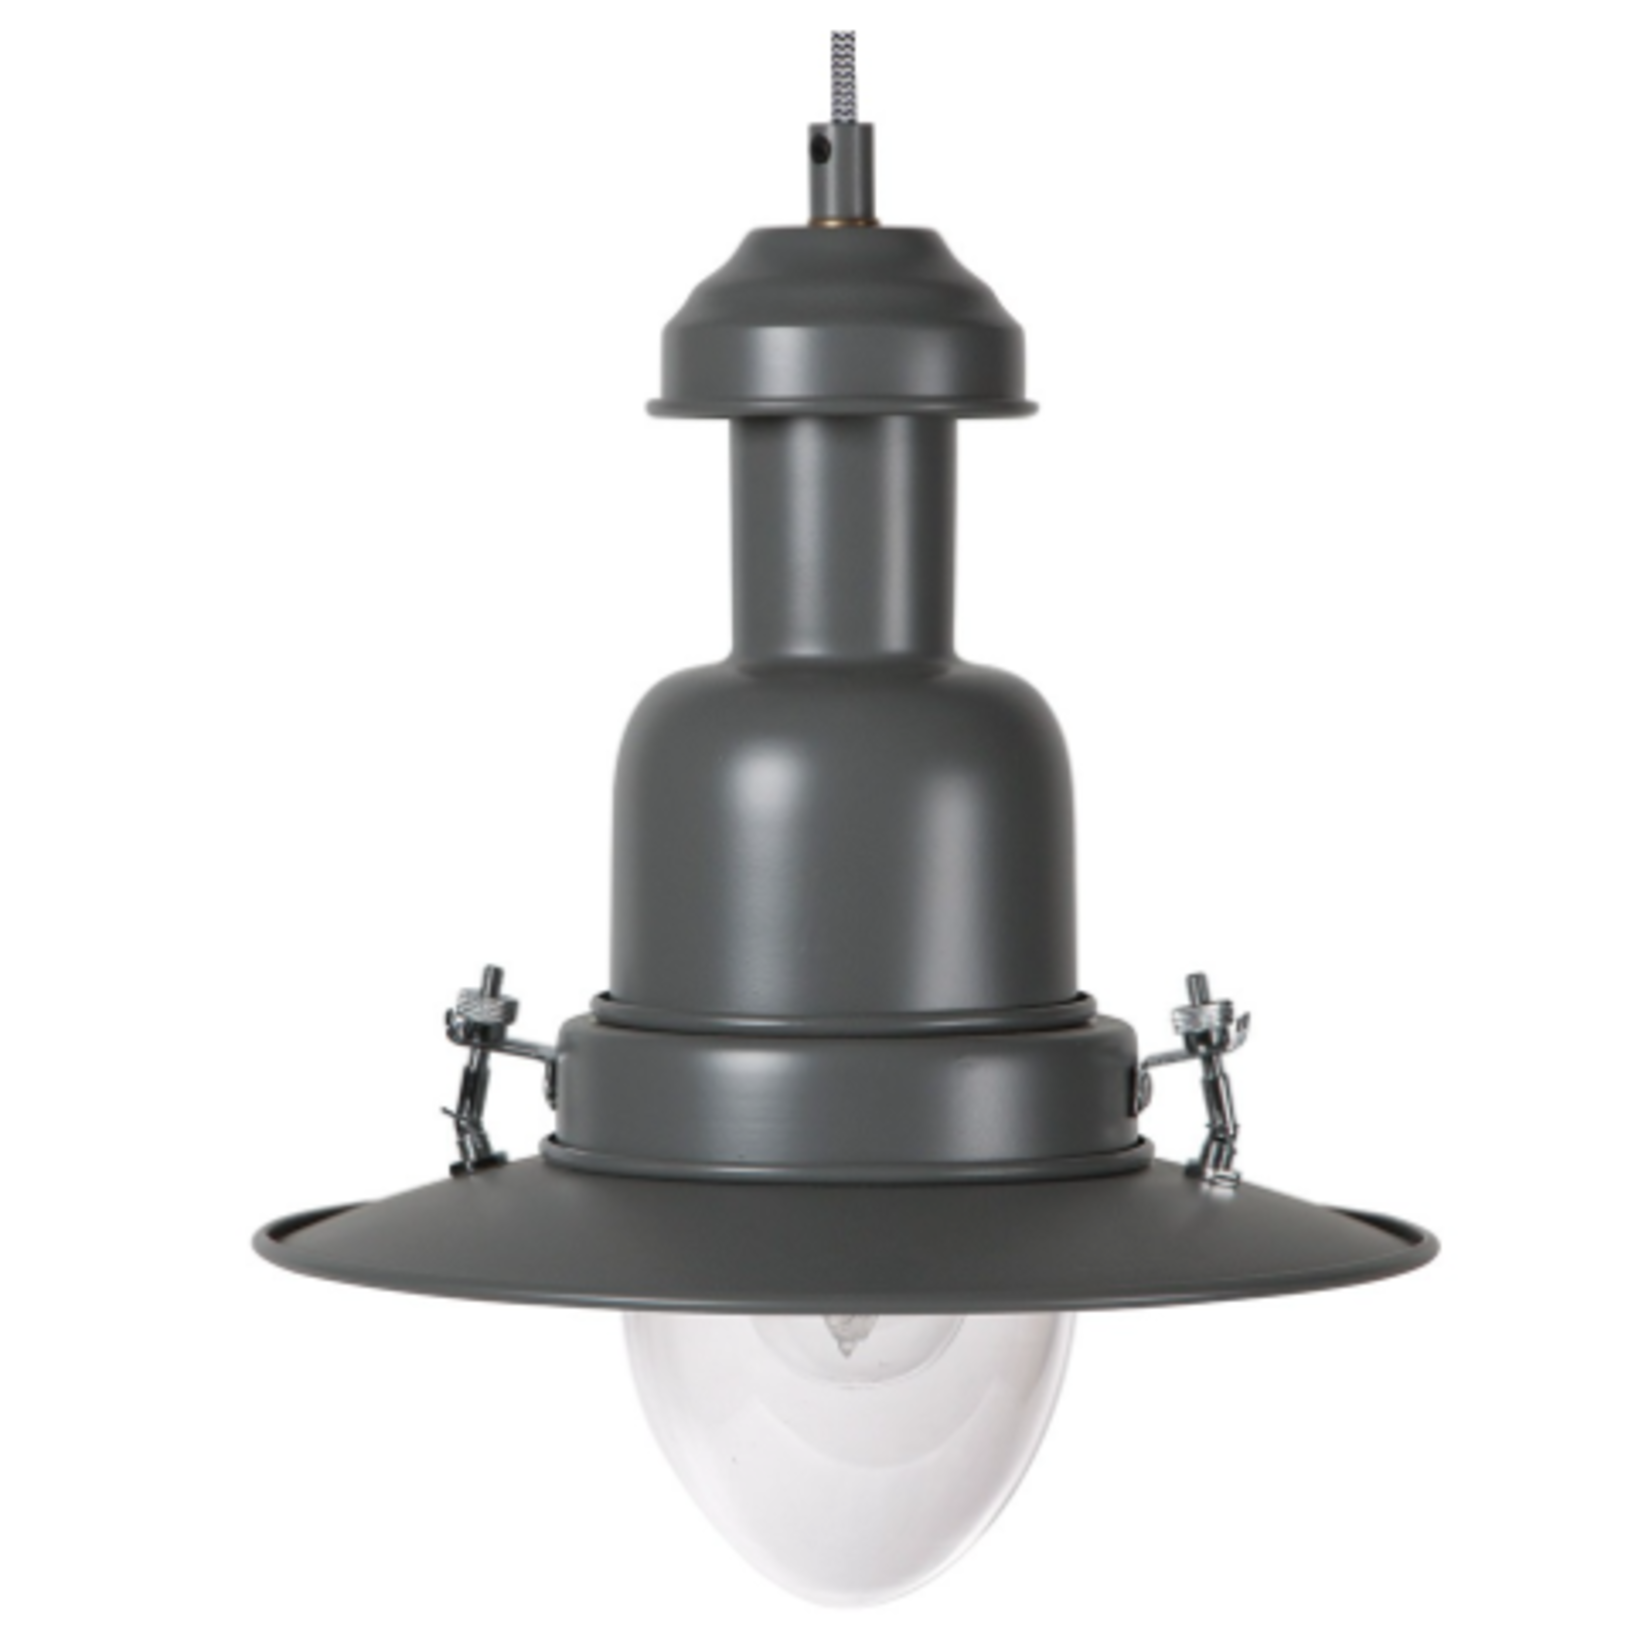 GT DISCOUNTED Pendant Fishing Light - Charcoal - small dent WAS £65